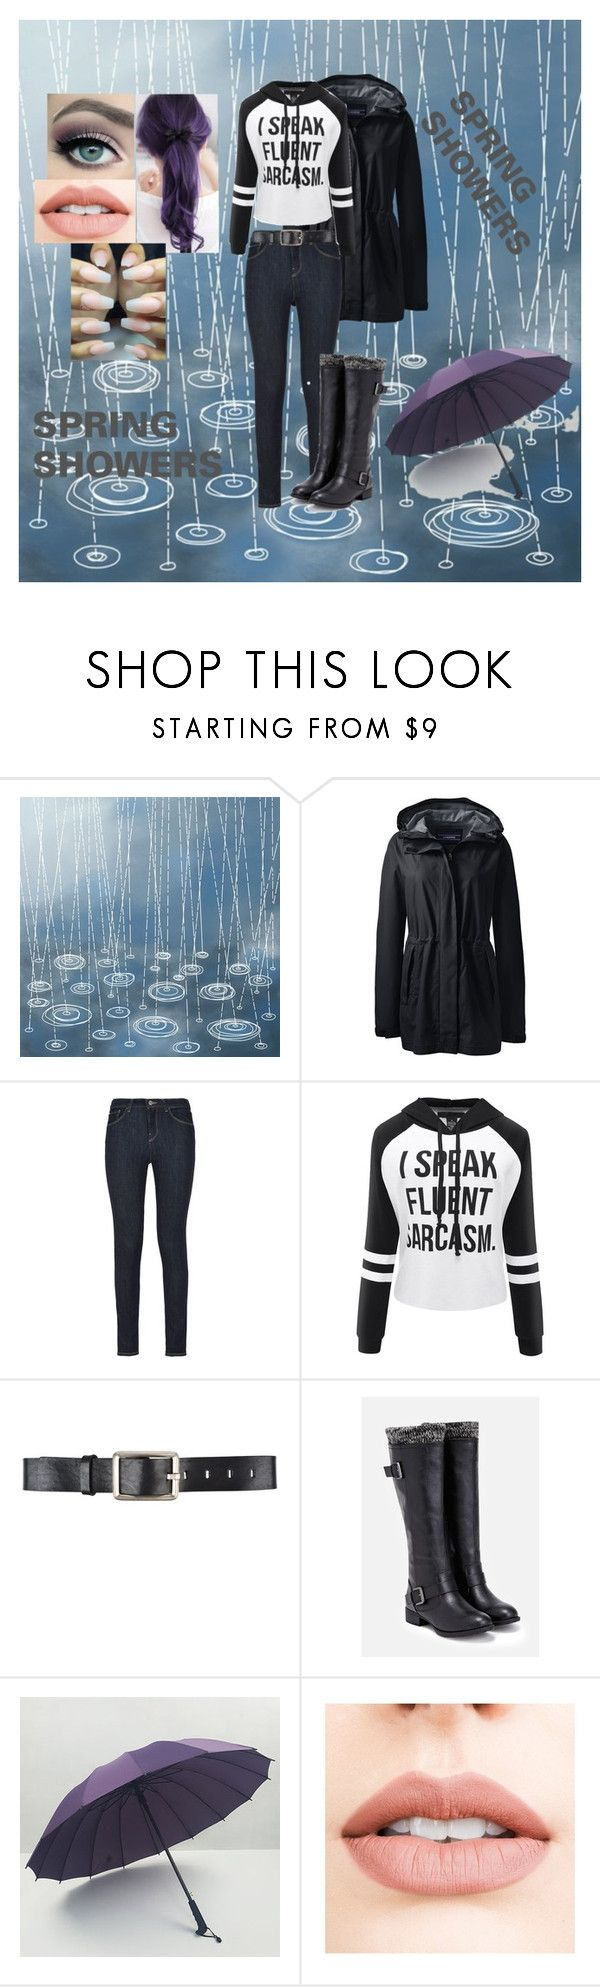 """""""Spring showers"""" by harleyquinn-1970 ❤ liked on Polyvore featuring Lands' End, Armani Jeans, Belstaff, JustFab and Jouer"""